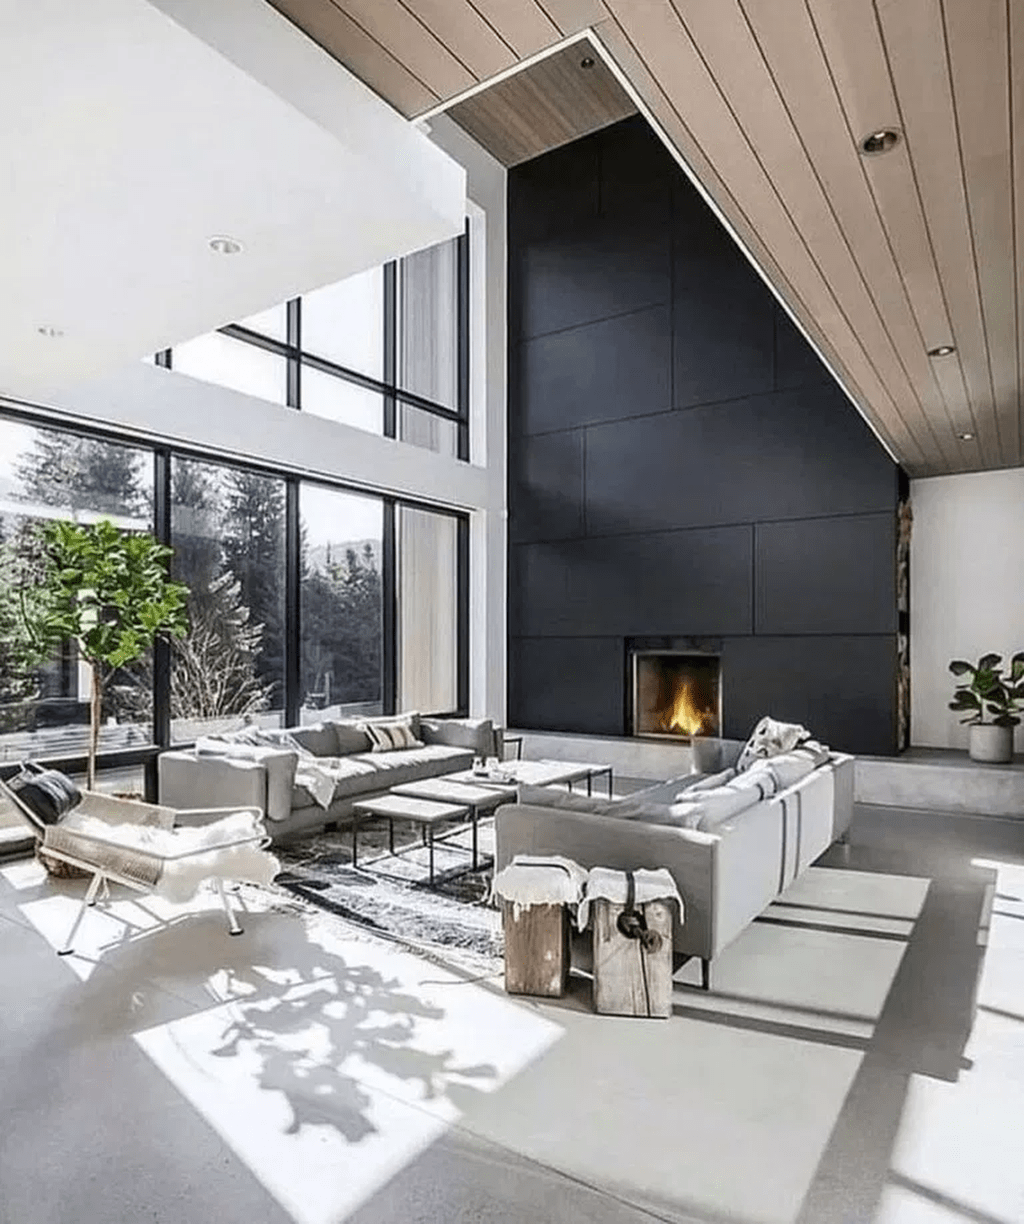 36 Beautiful Contemporary Interior Design Ideas You Never Seen Before In 2020 High Ceiling Living Room Modern Houses Interior Modern House Design